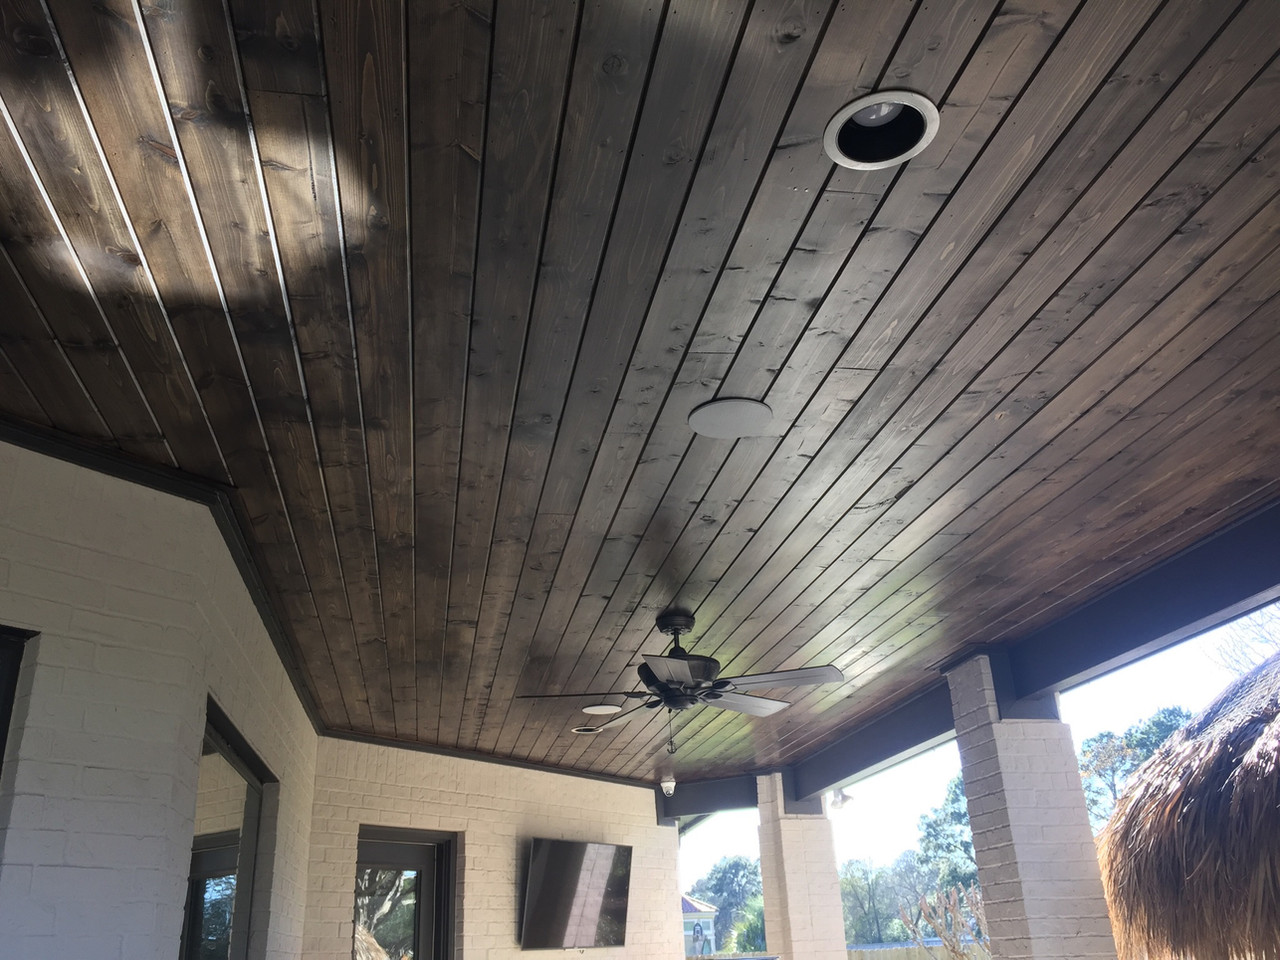 wood paneled outdoor ceiling with surround sound installations